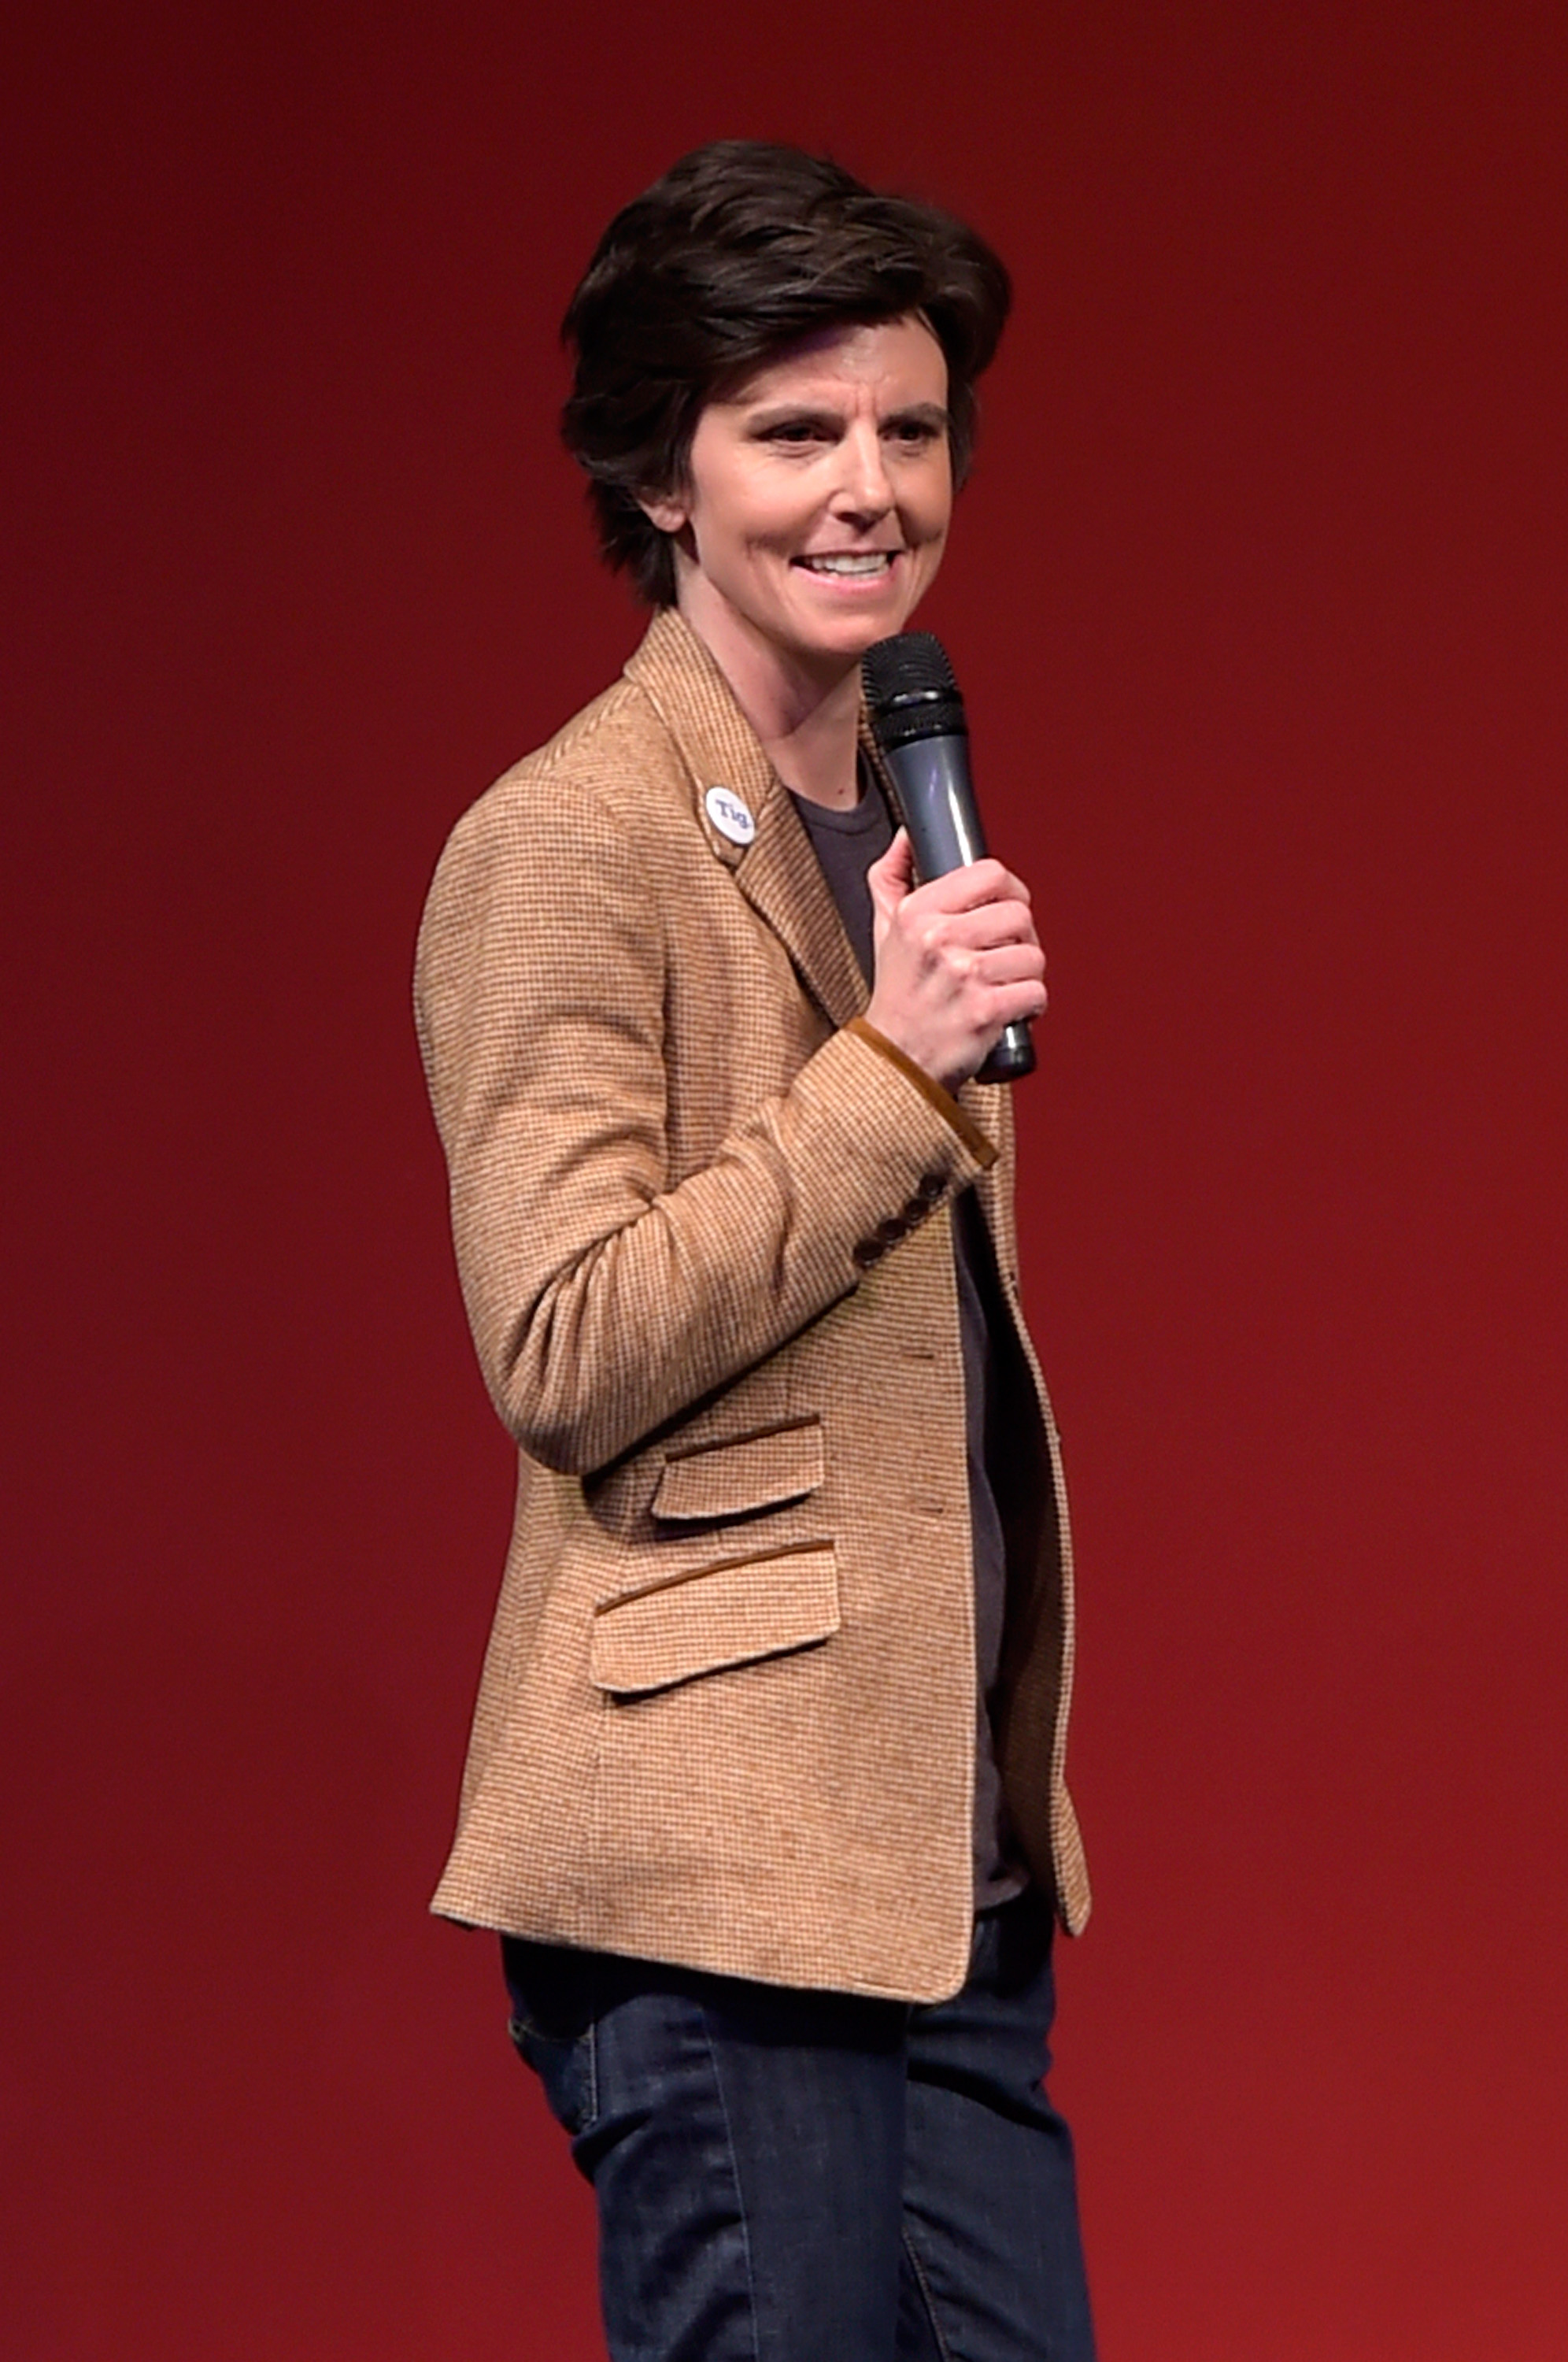 Host Tig Notaro speaks onstage at the Awards Night Ceremony during the 2015 Sundance Film Festival at the Basin Recreation Field House on January 31, 2015 in Park City, Utah.